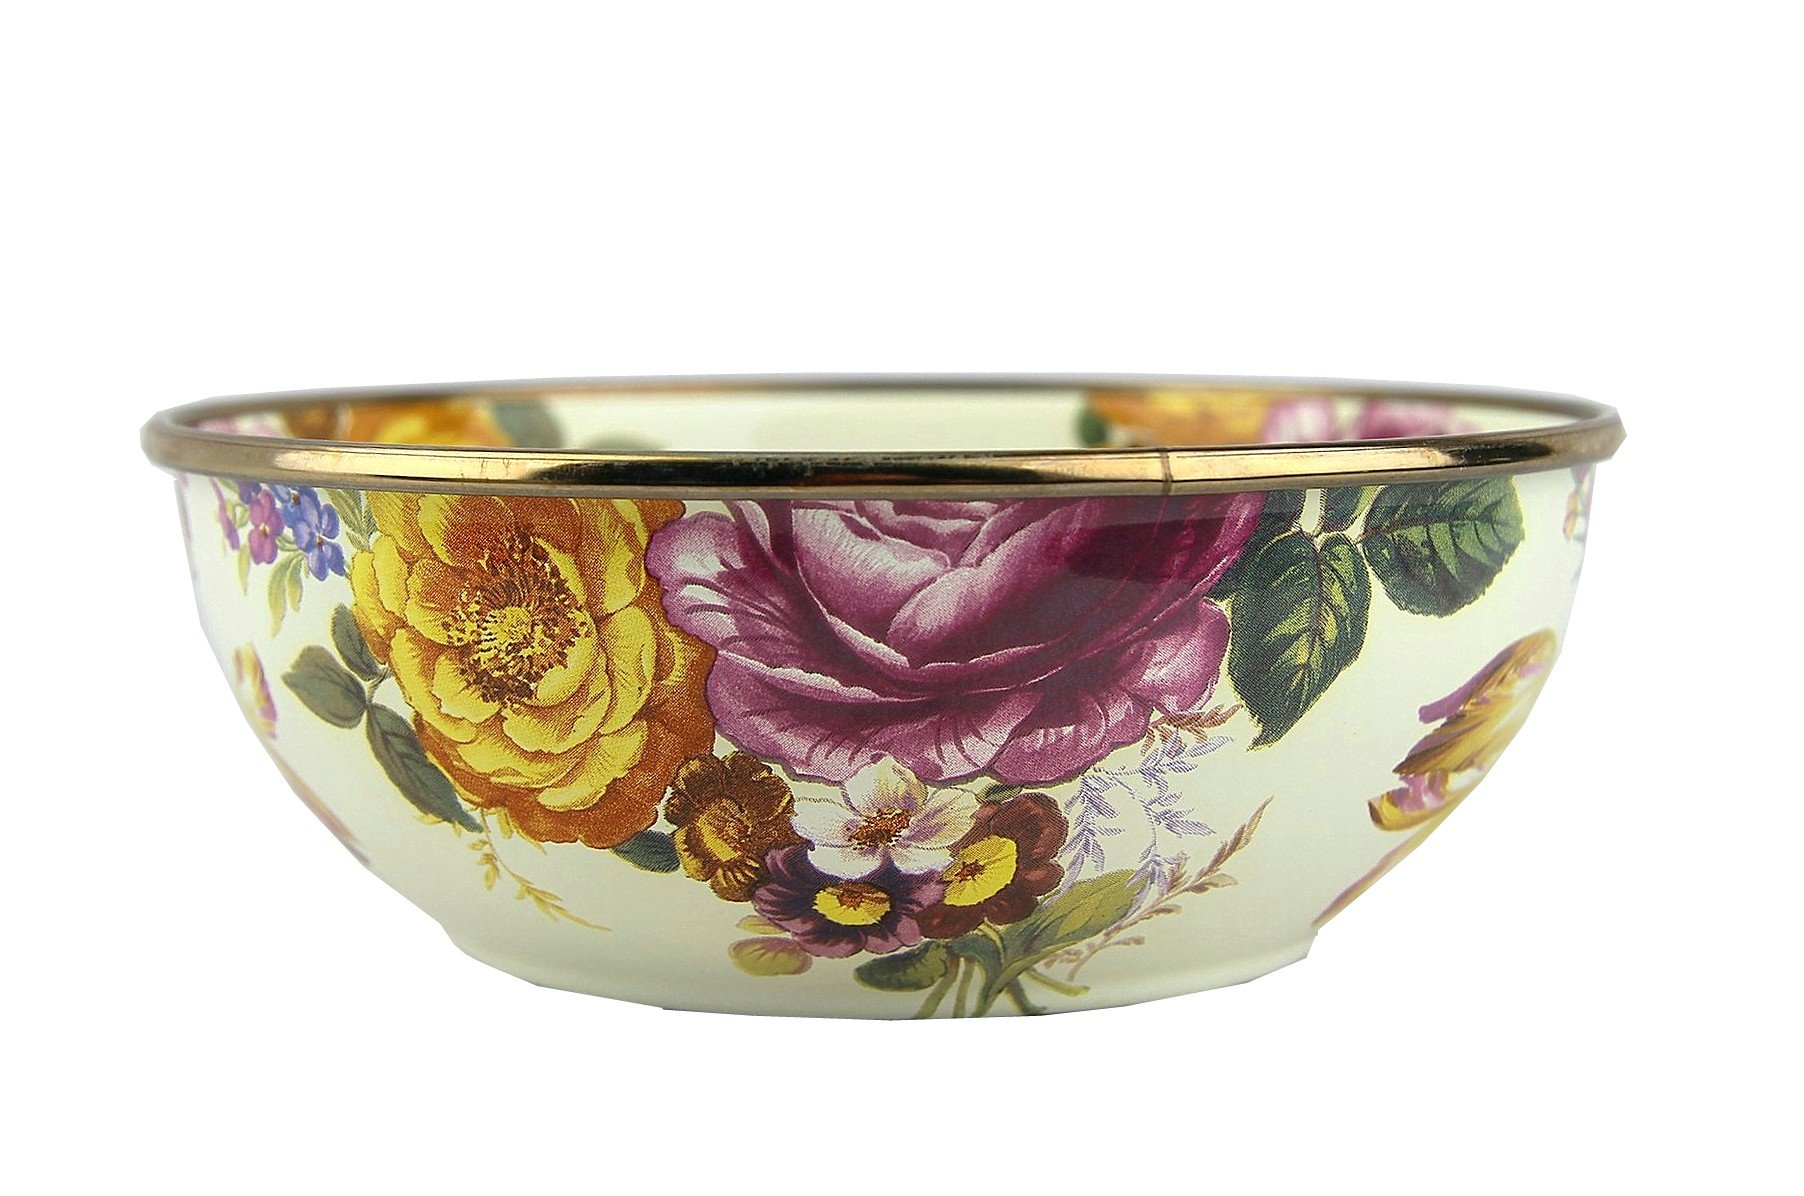 MacKenzie-Childs Flower Market Everyday Bowl 6'' dia, 2'' tall, 2 cup capacity